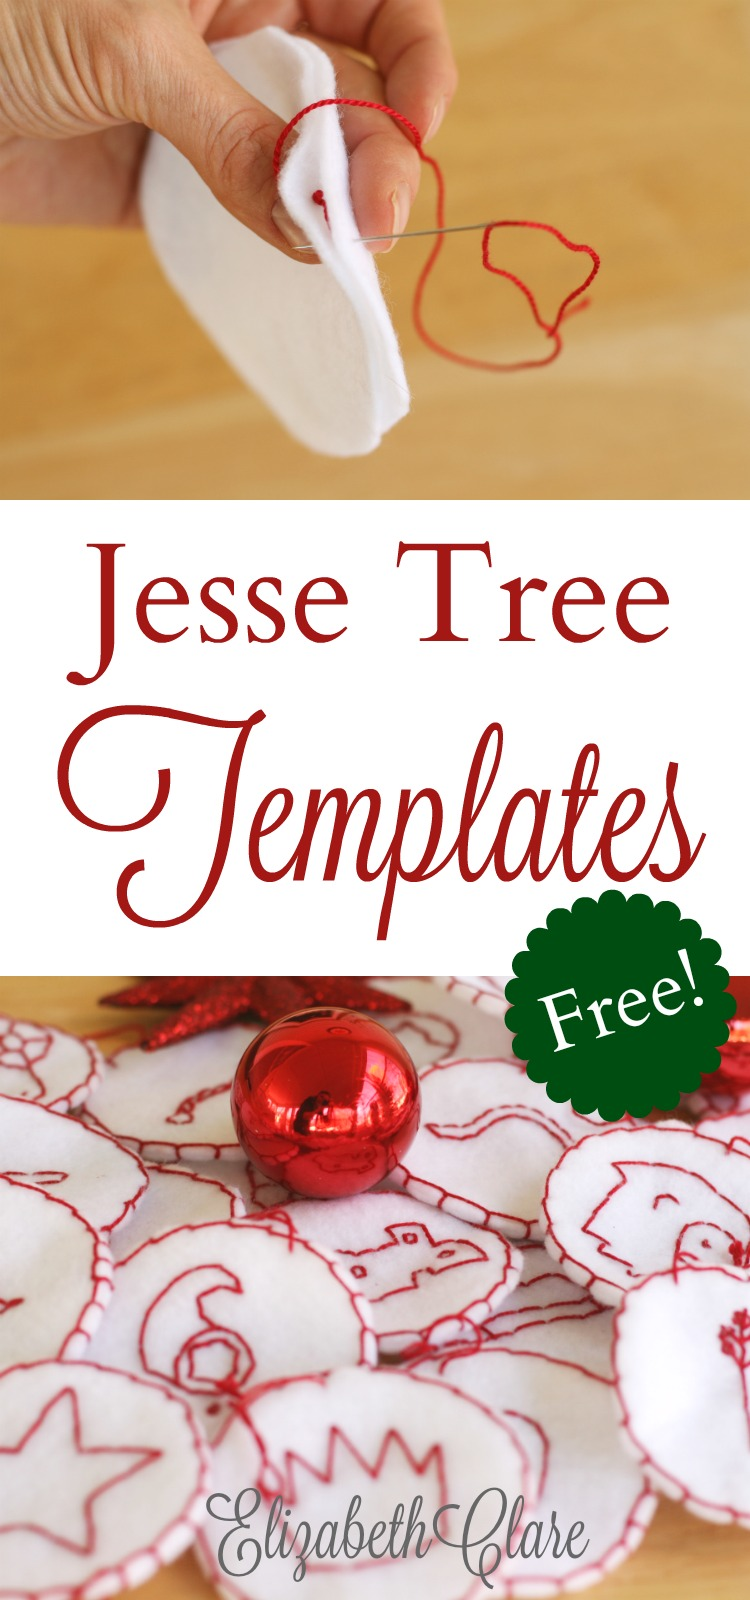 FREE! Jesse Tree Felt Templates. AWESOME and beautiful, easy diy for this fun Advent tradition!